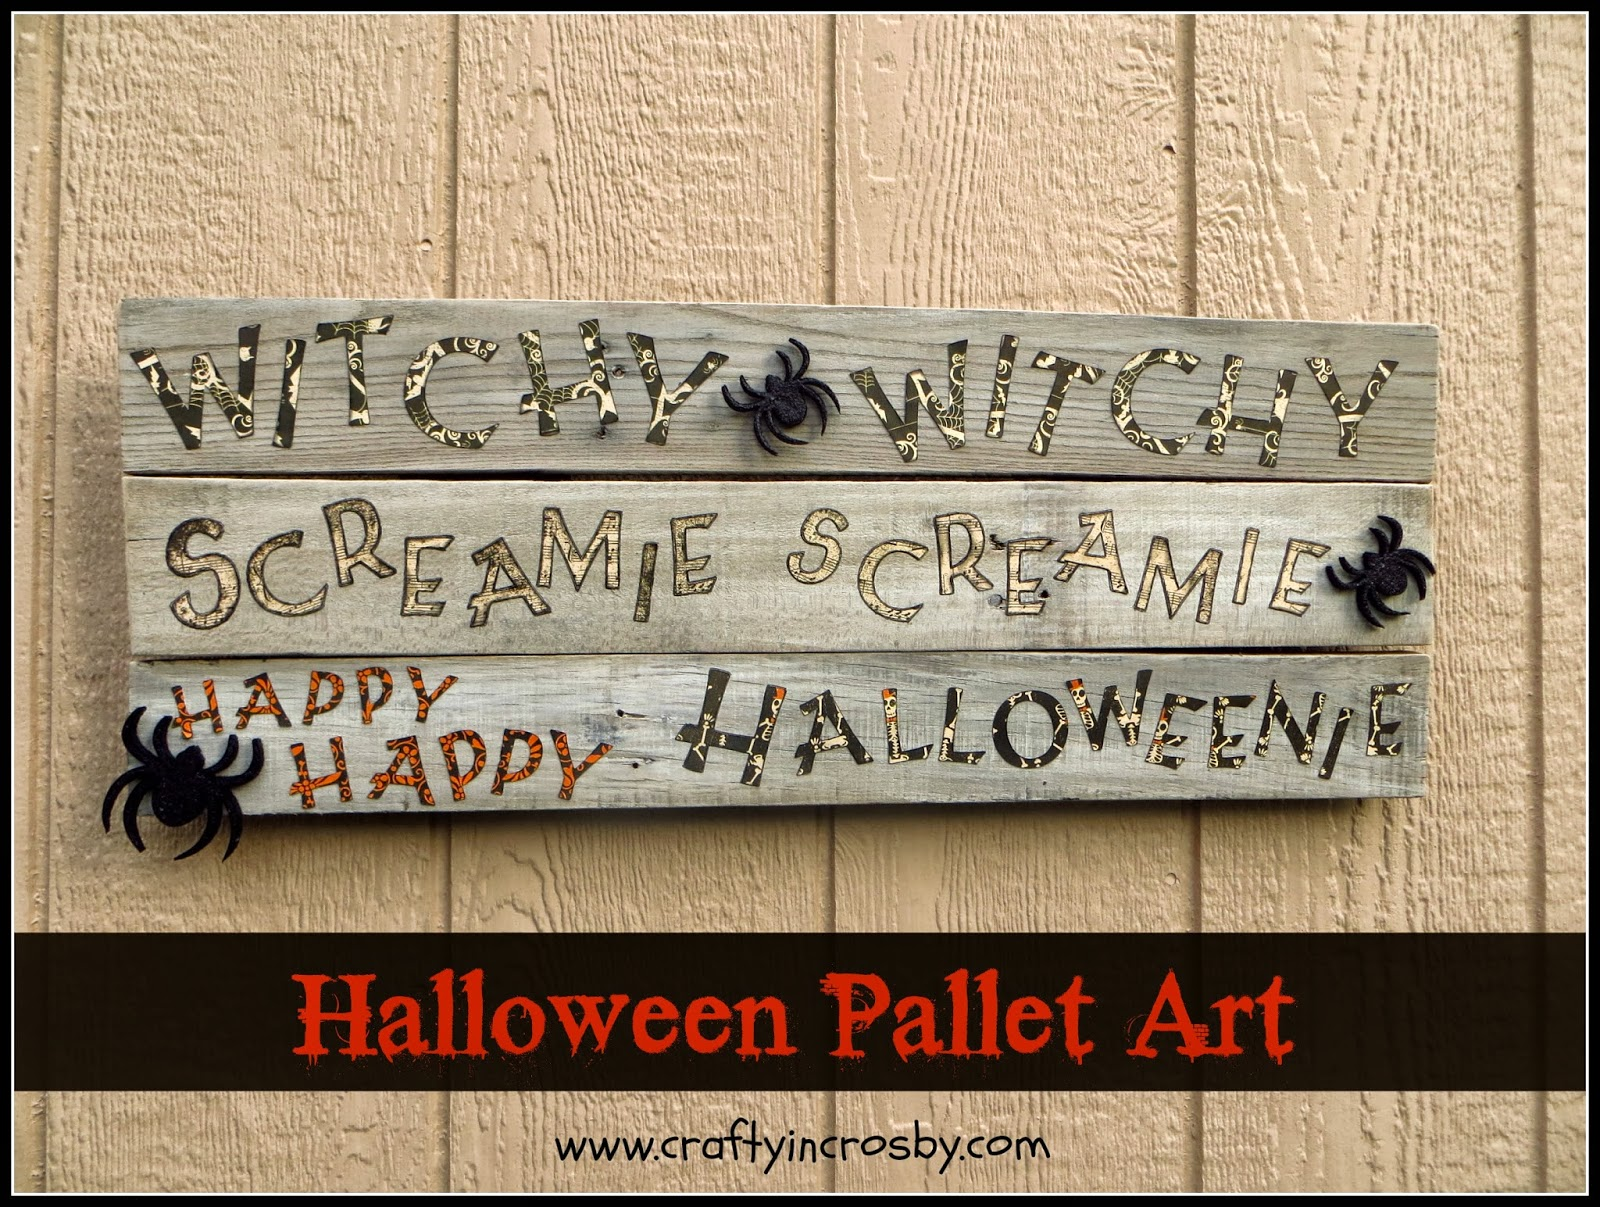 witchie witchie screamie screamie happy happy halloweenie pallet art cricut art halloween sign